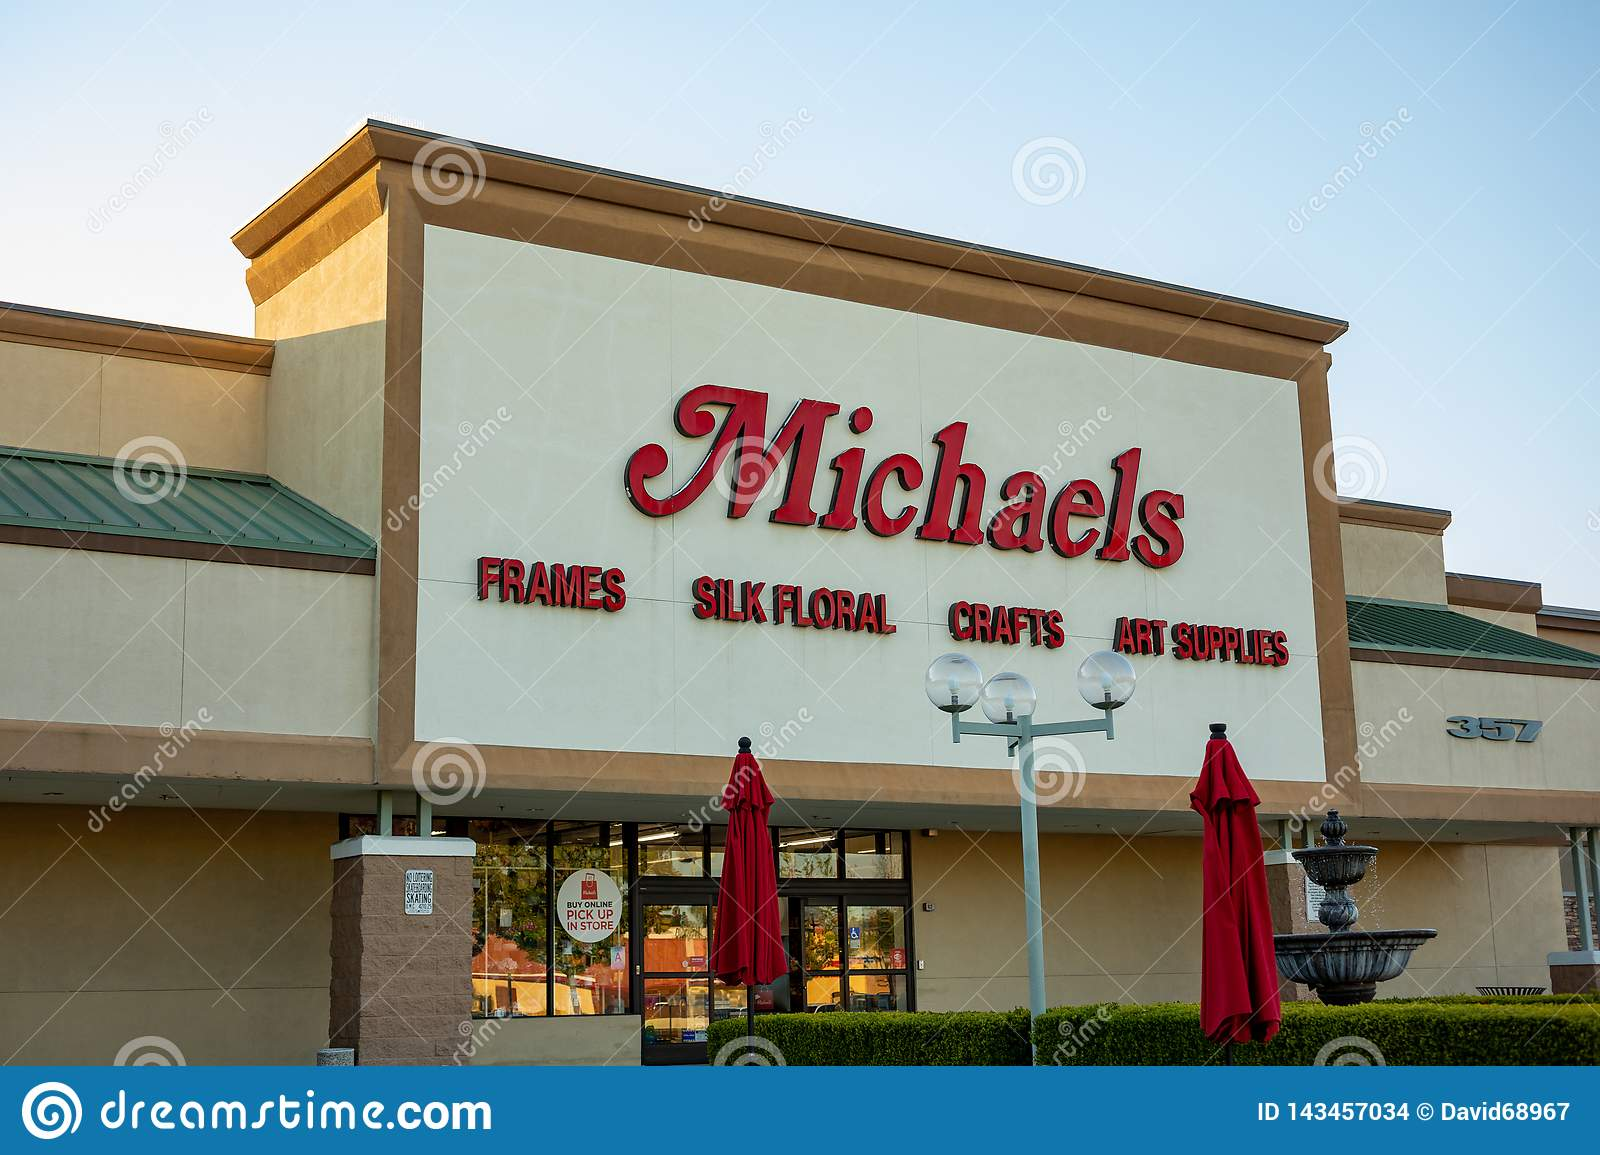 A store front sign for Michaels